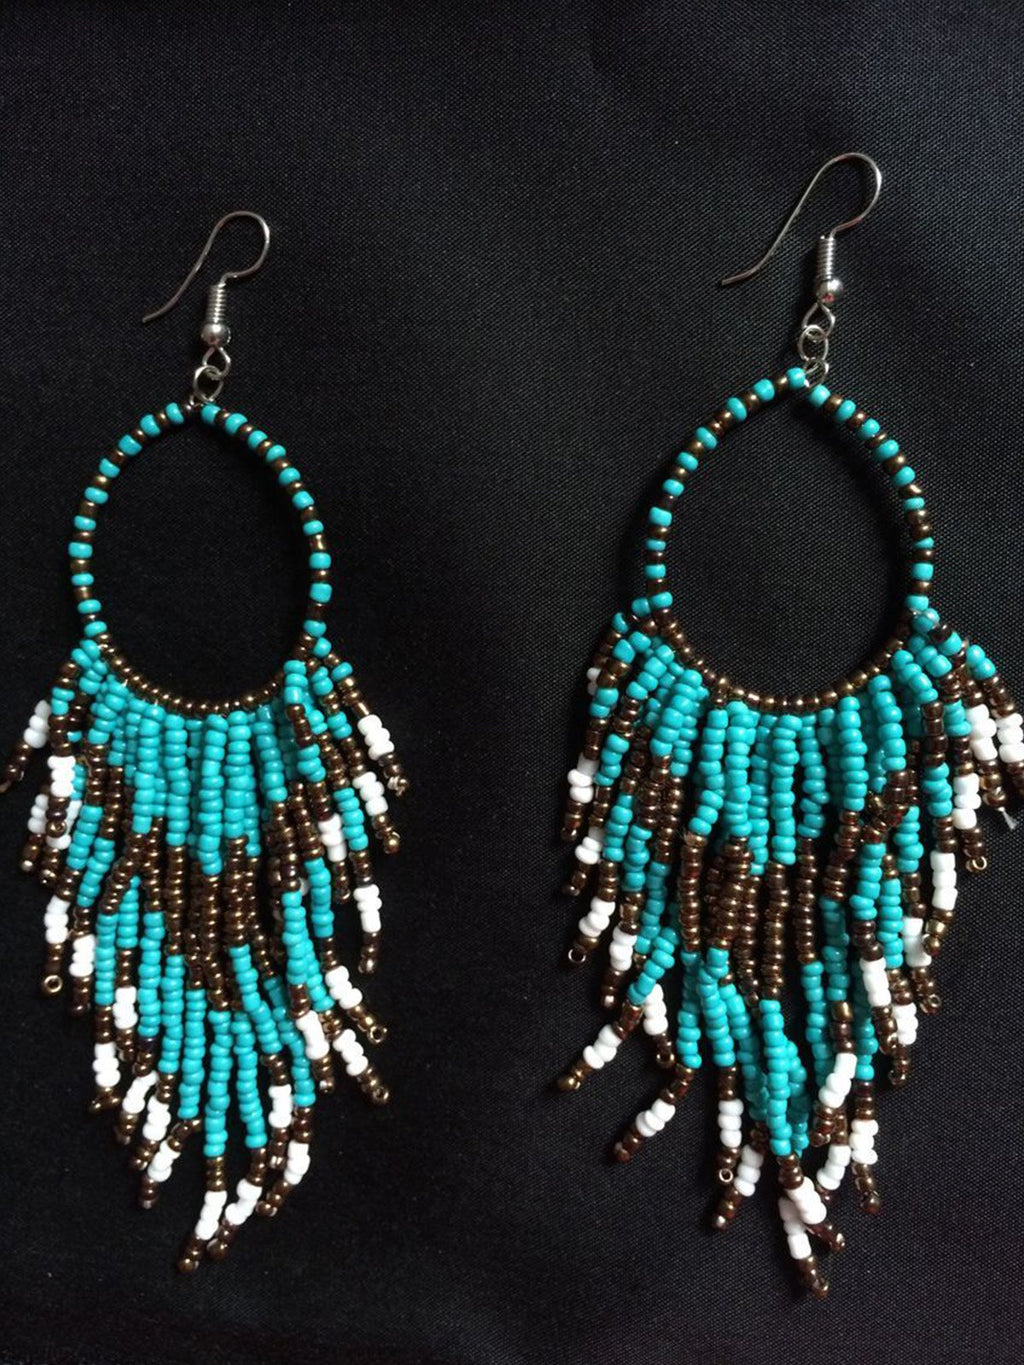 Fashion Bohemian Tassel Pendant Earrings Ear Jewelry